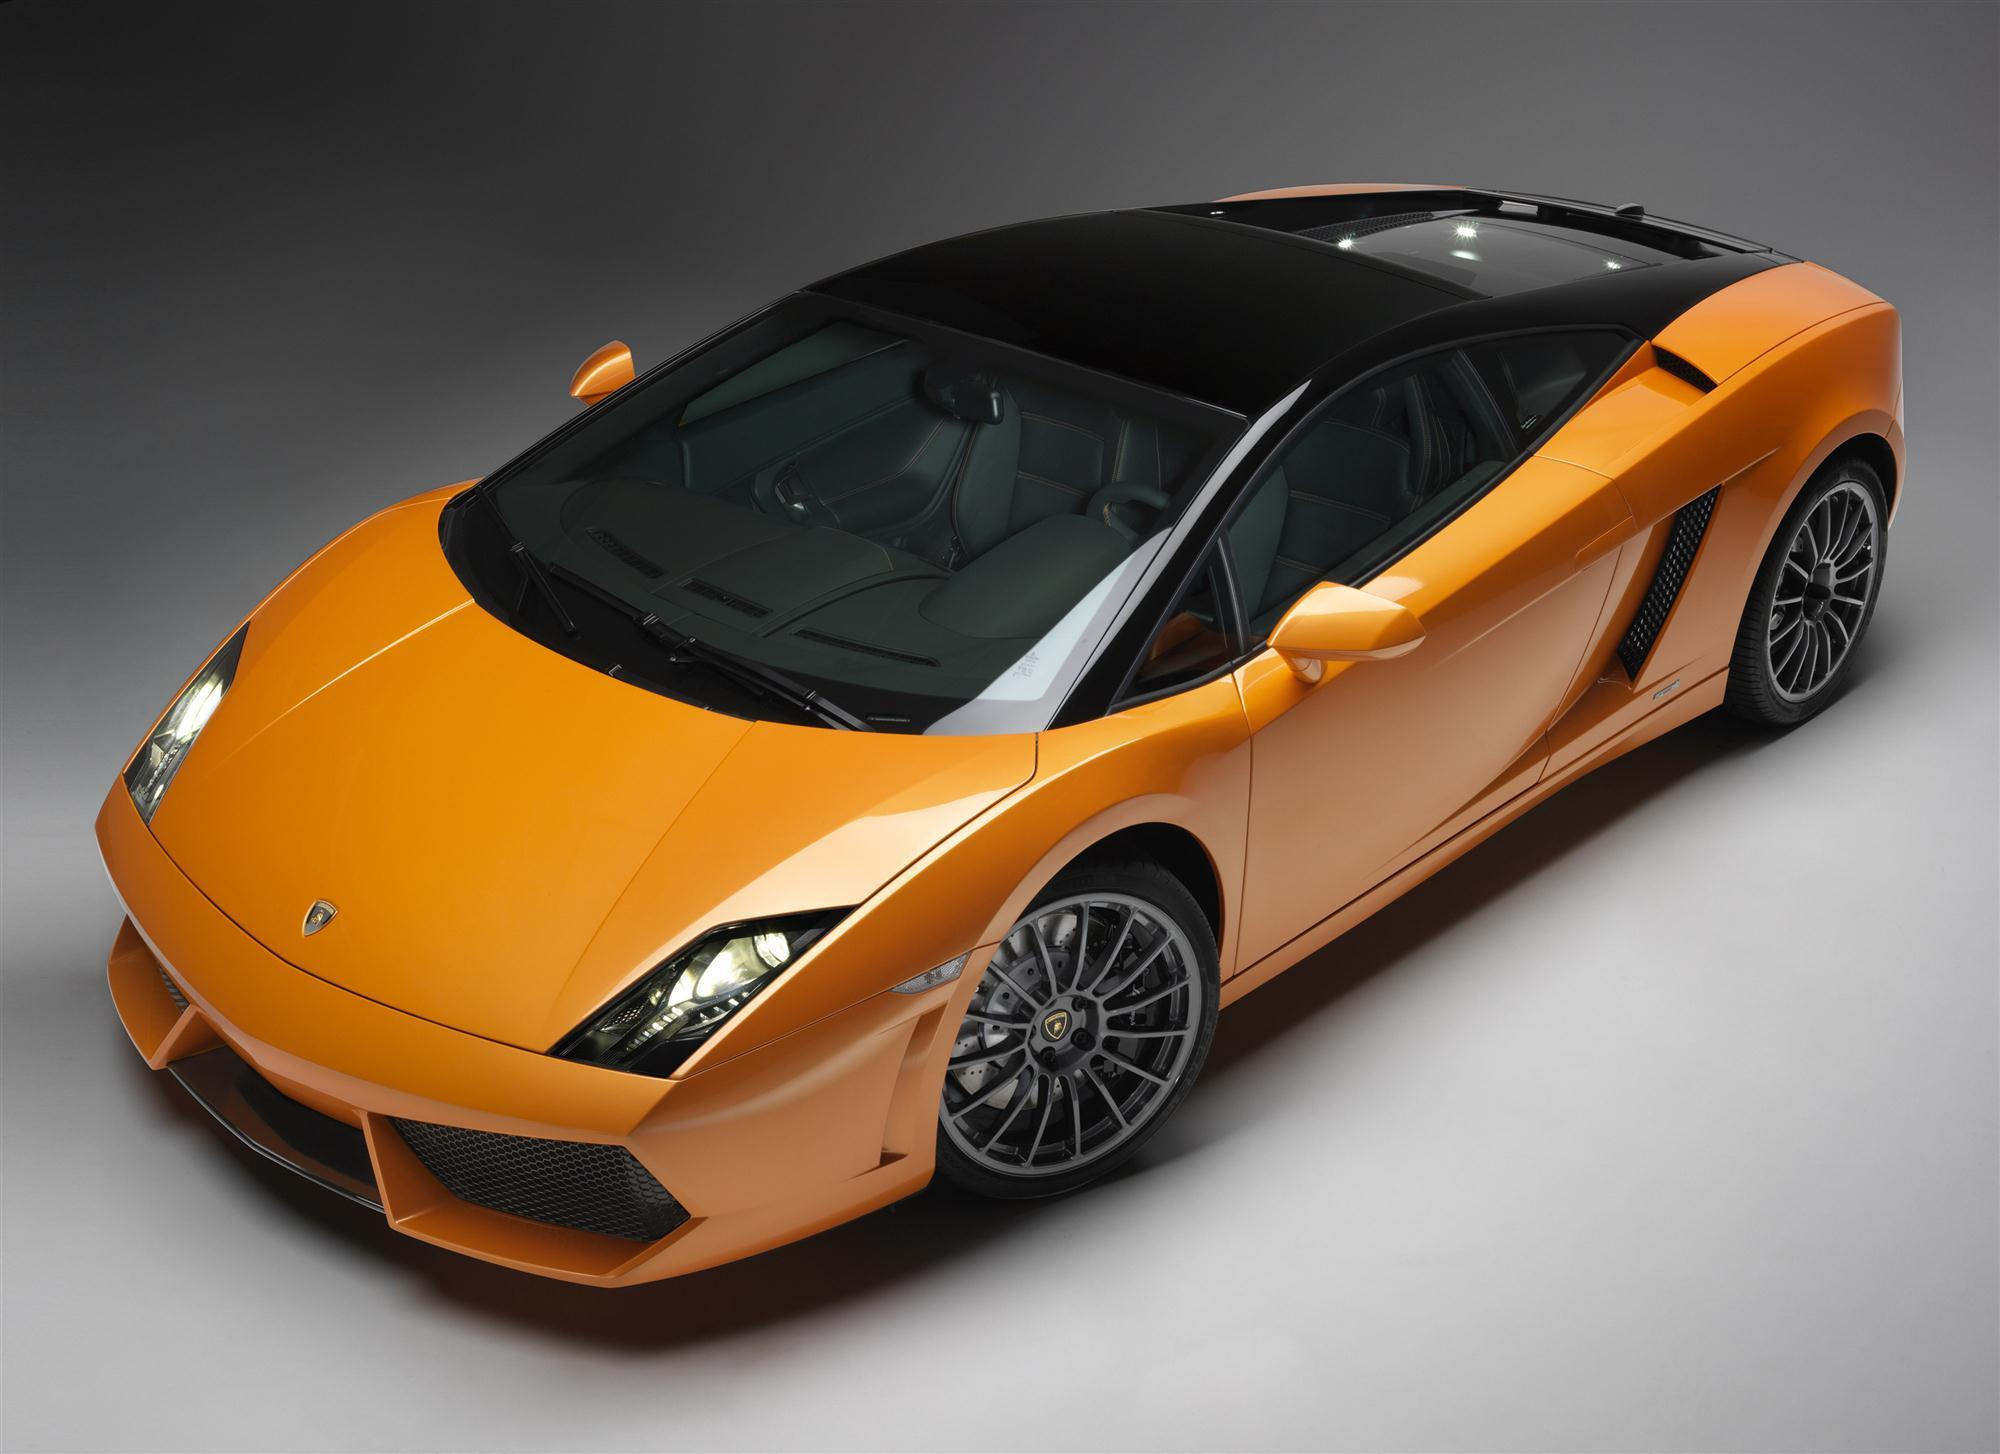 Lamborghini Gallardo Lp560 4 Bicolore Unveiled In Qatar